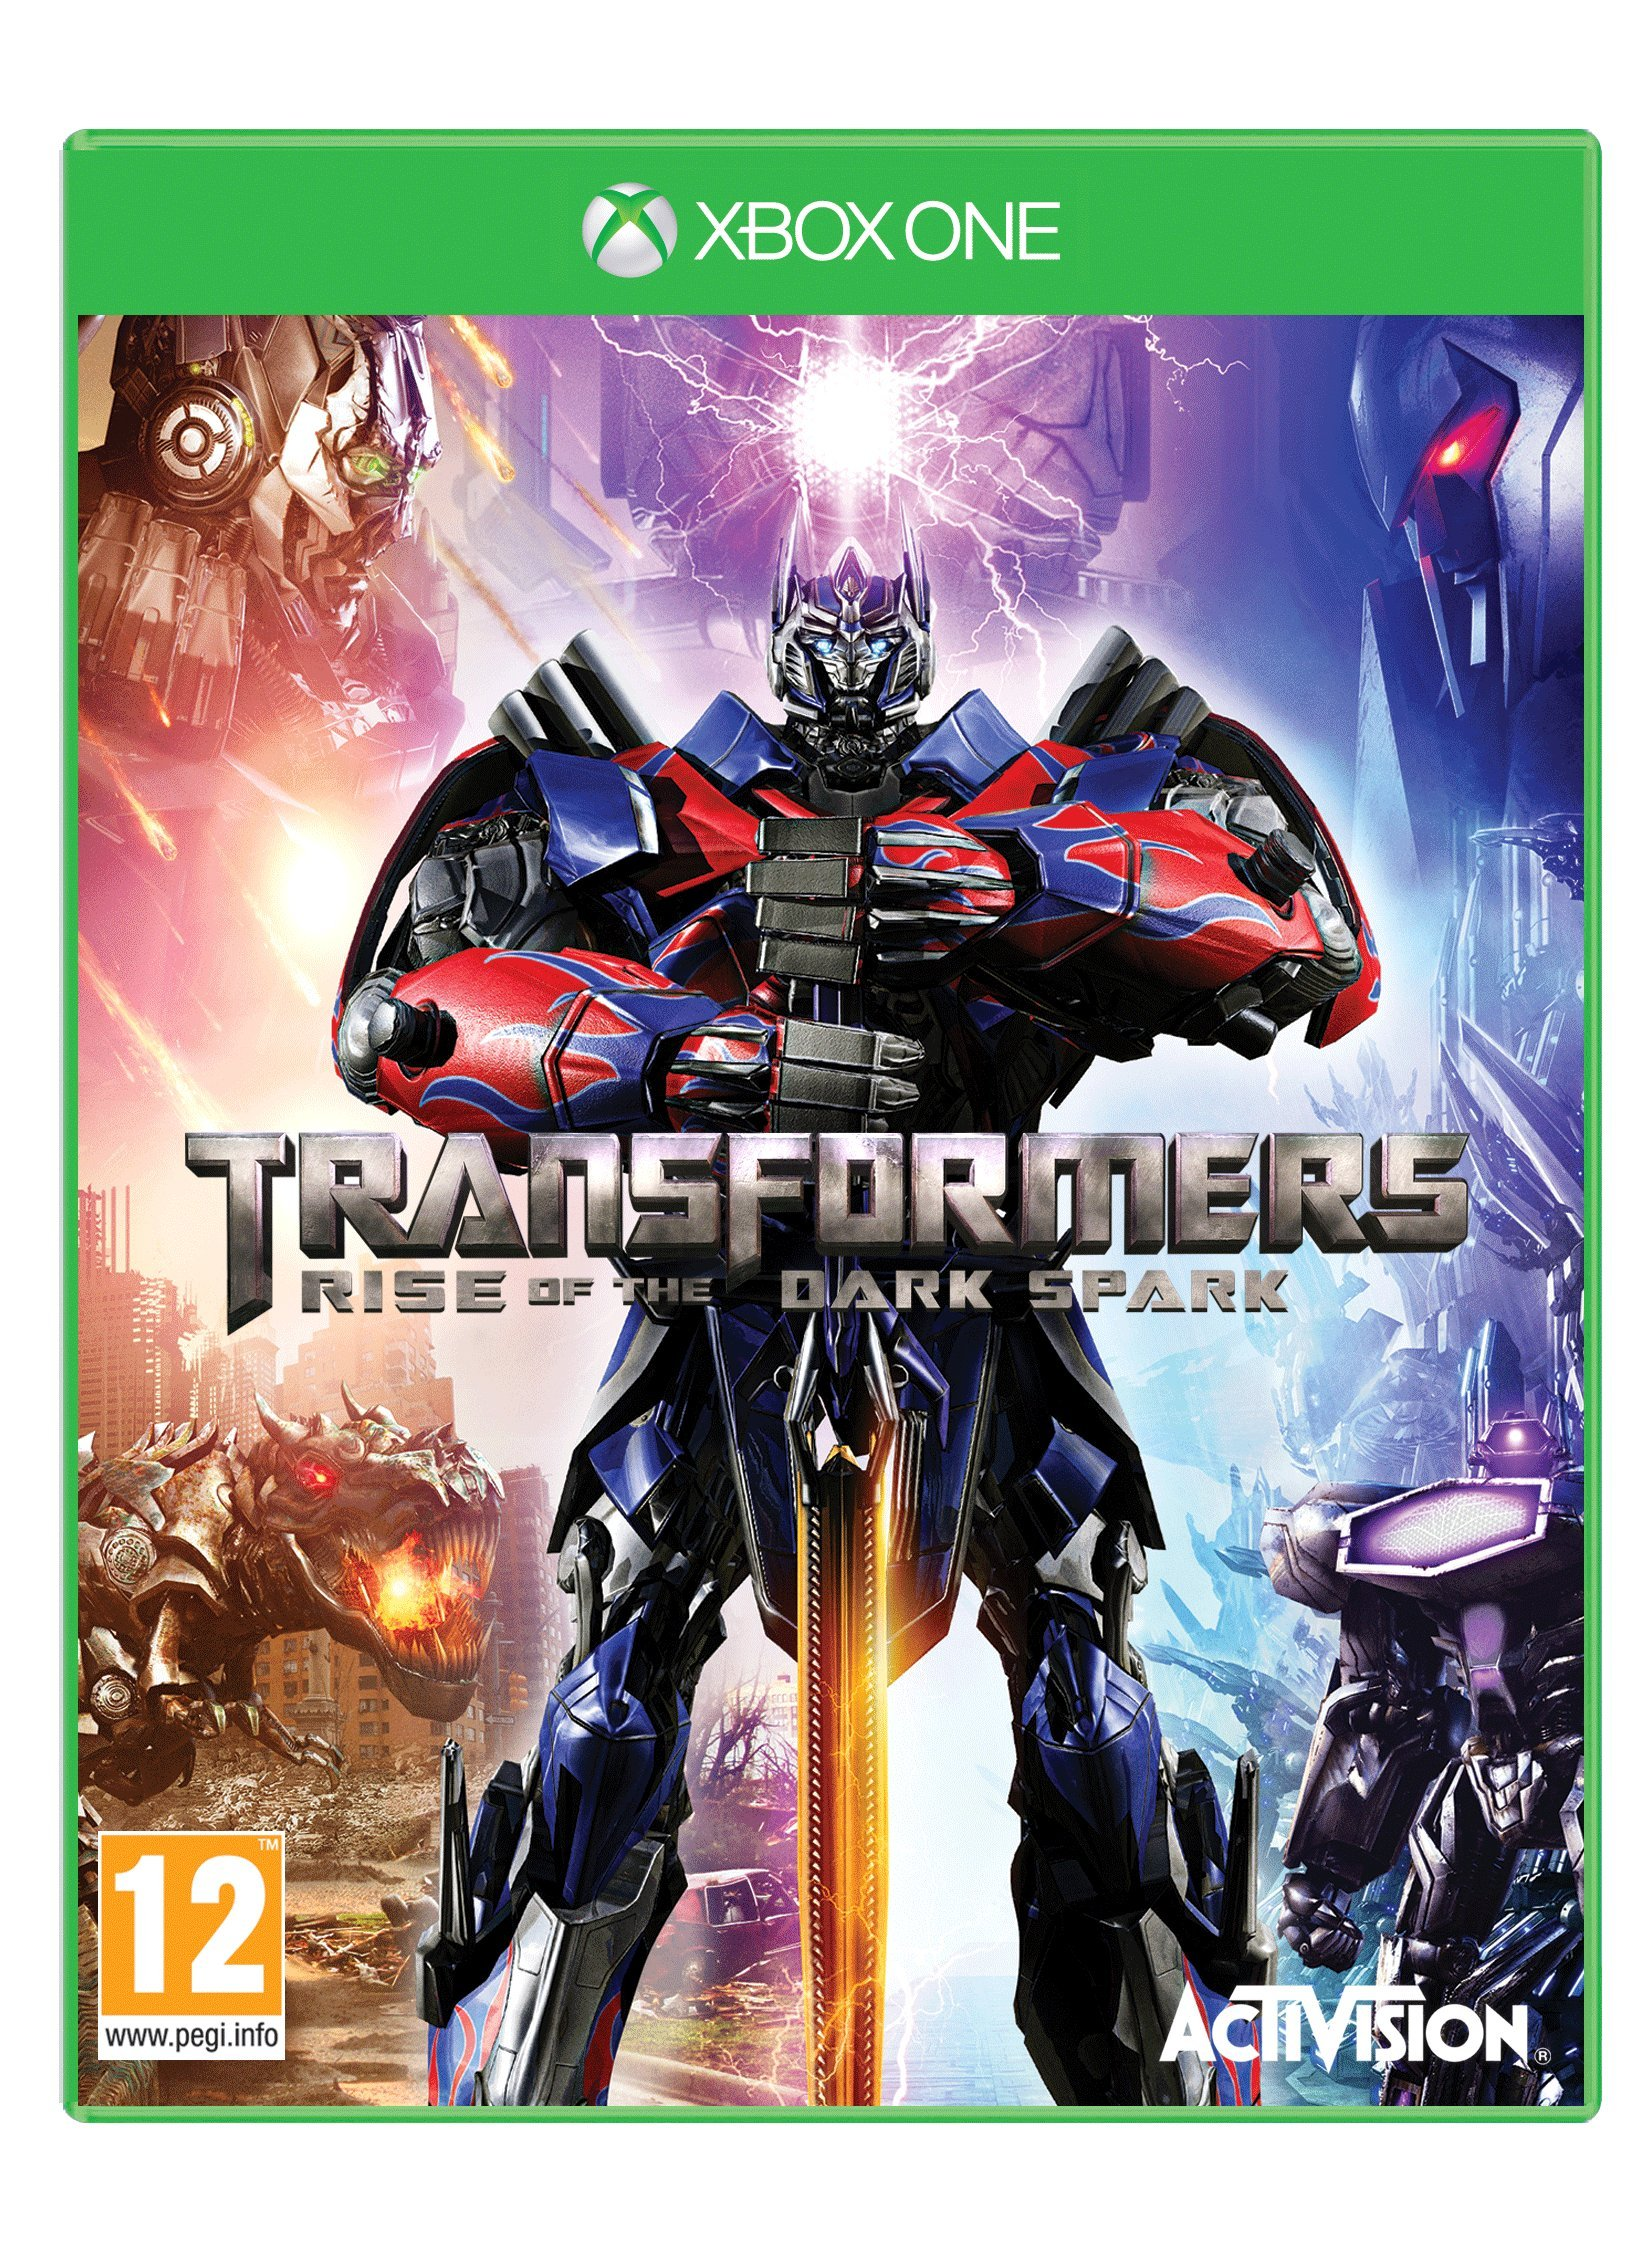 Transformers: Rise of the Dark Spark (Xbox One) by Activision (Image #1)